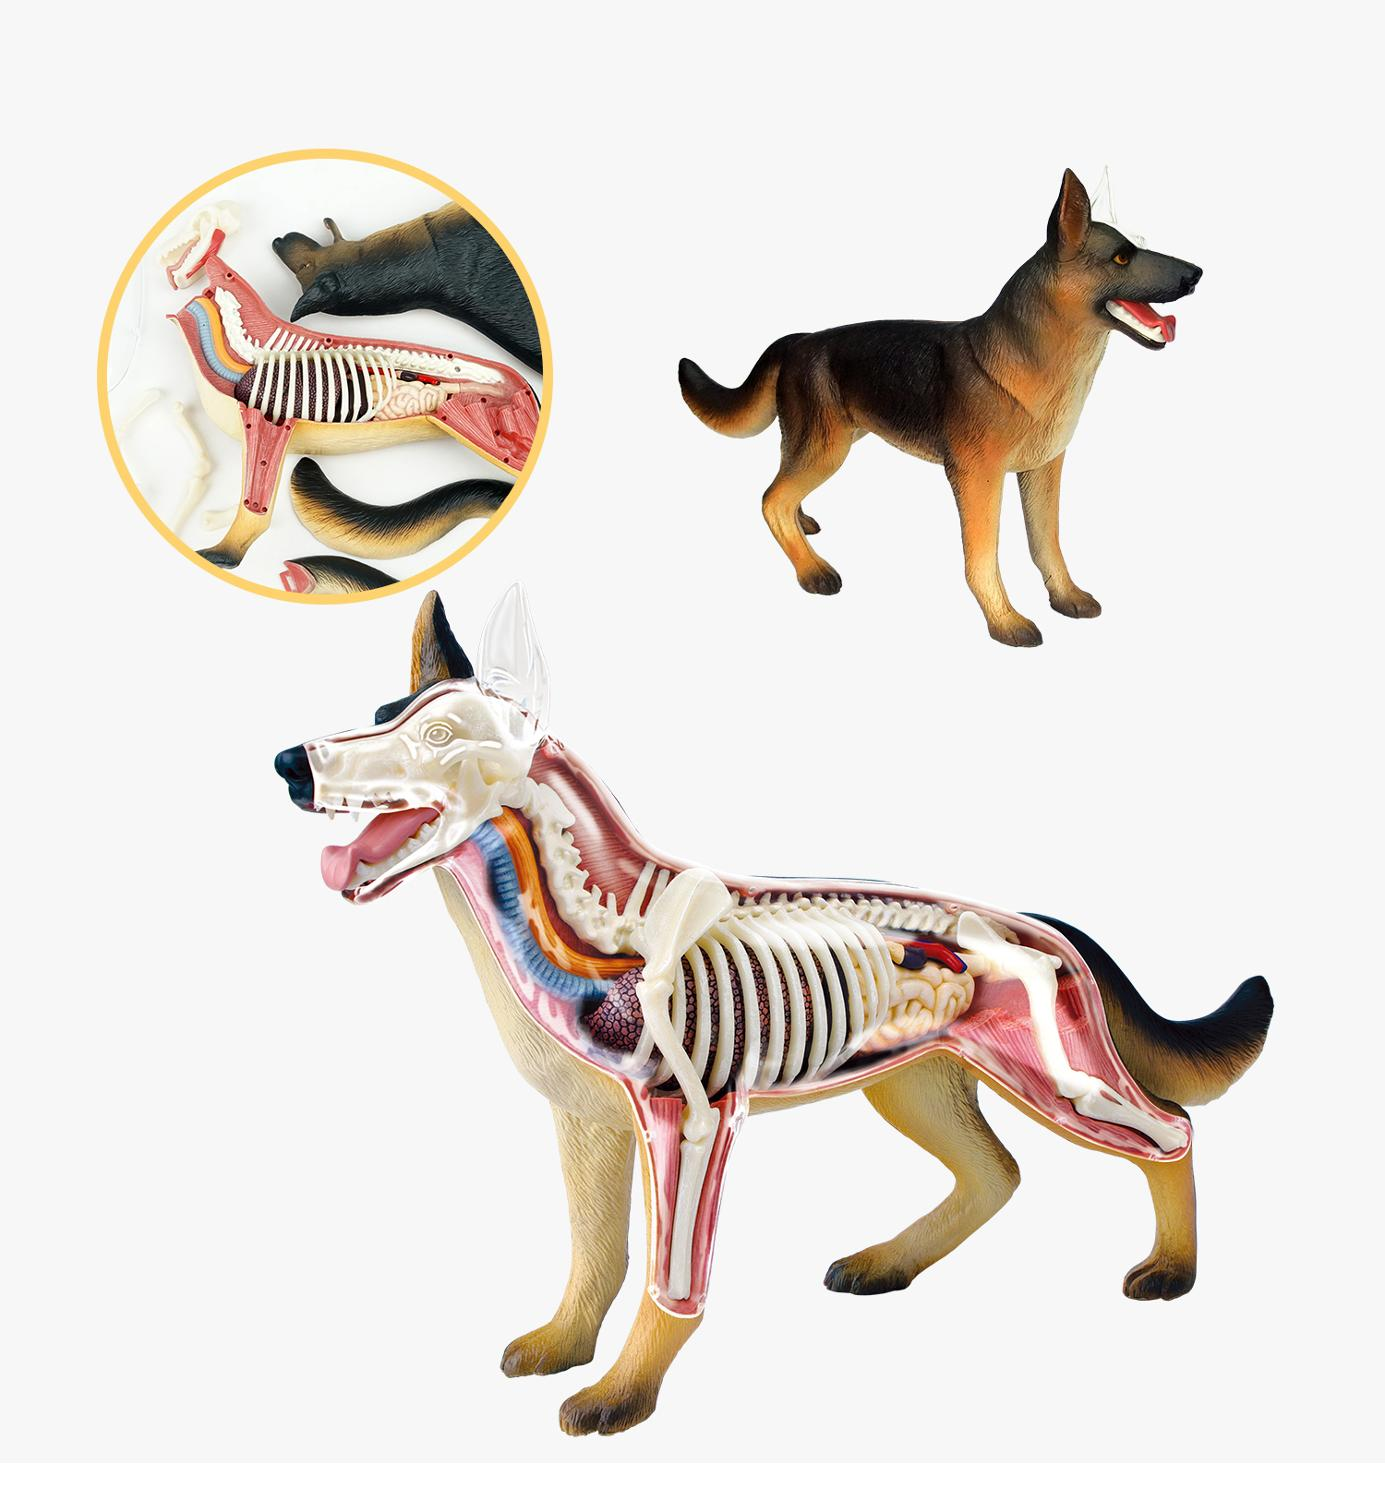 Dog Animal Biology Canine Skeleton Model with Plastic Stand by Skeleton King